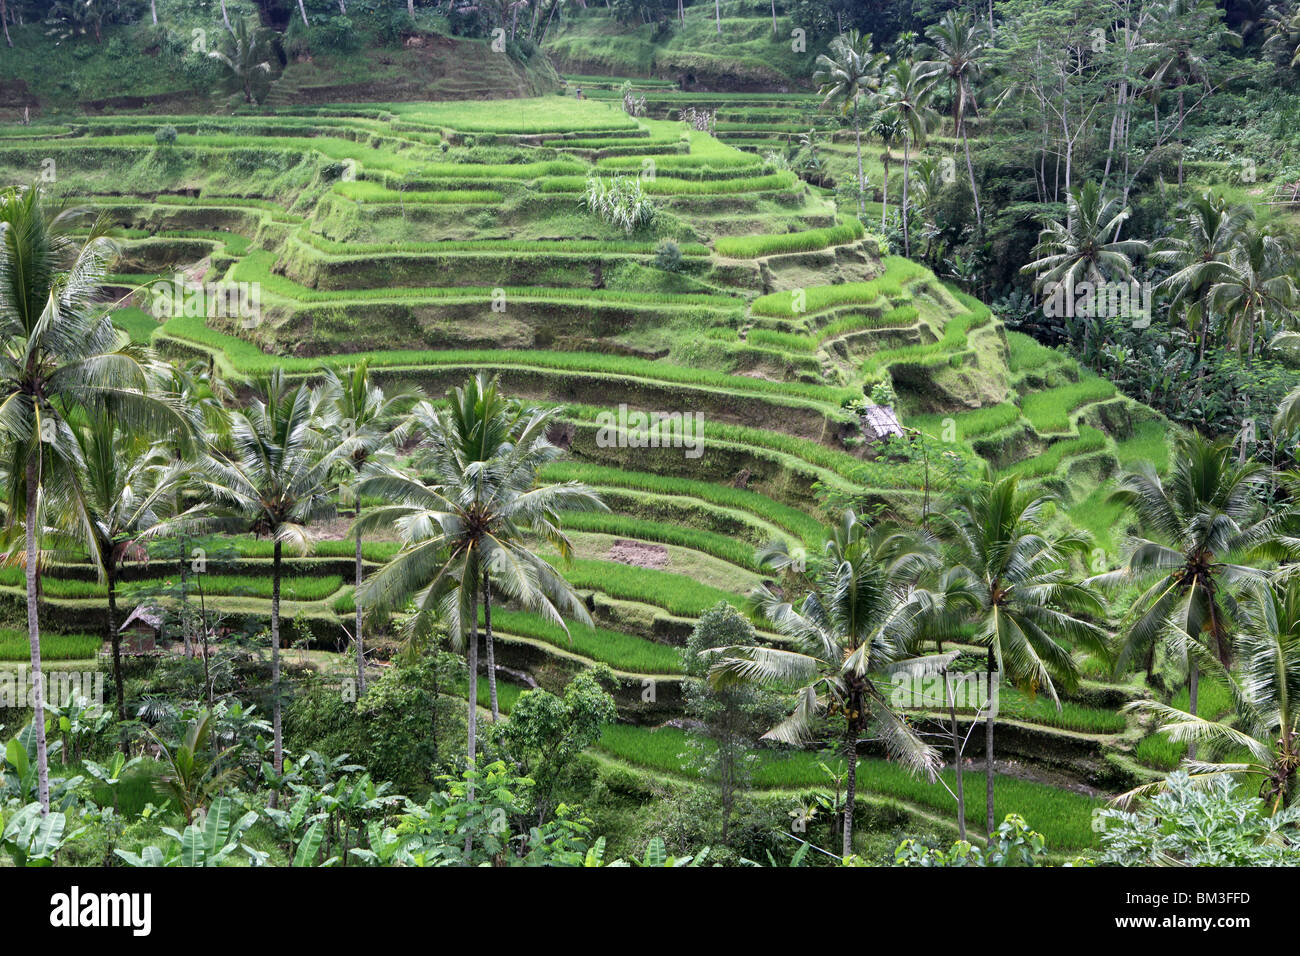 Terraced rice paddies in the countryside of Bali, Indonesia. - Stock Image